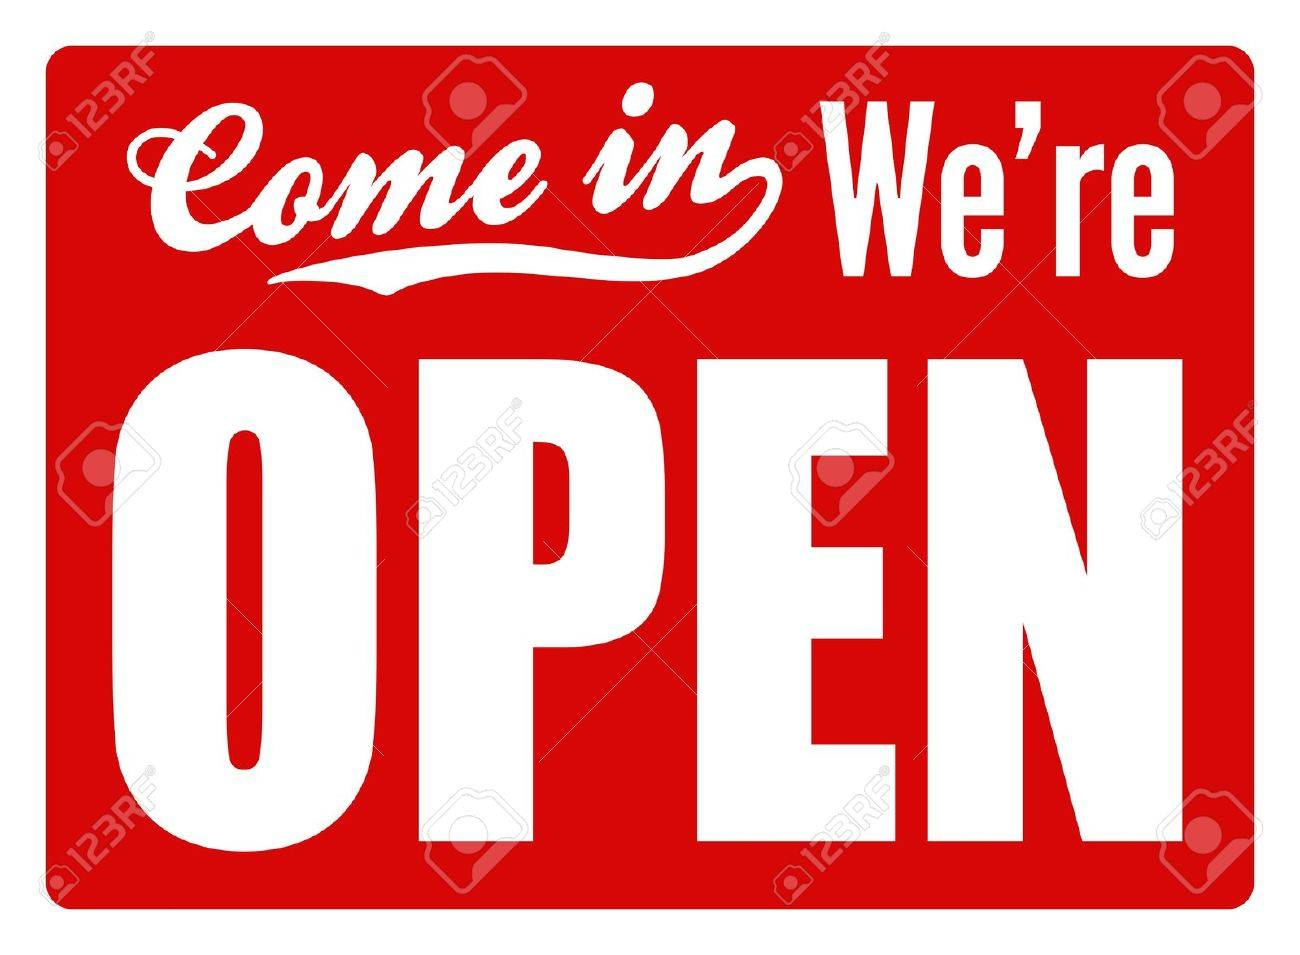 Typical  open  sign for a shop, cafe or company to let customers know they are open for business  Perfect as part of a design or shop Stock Photo - 21325402